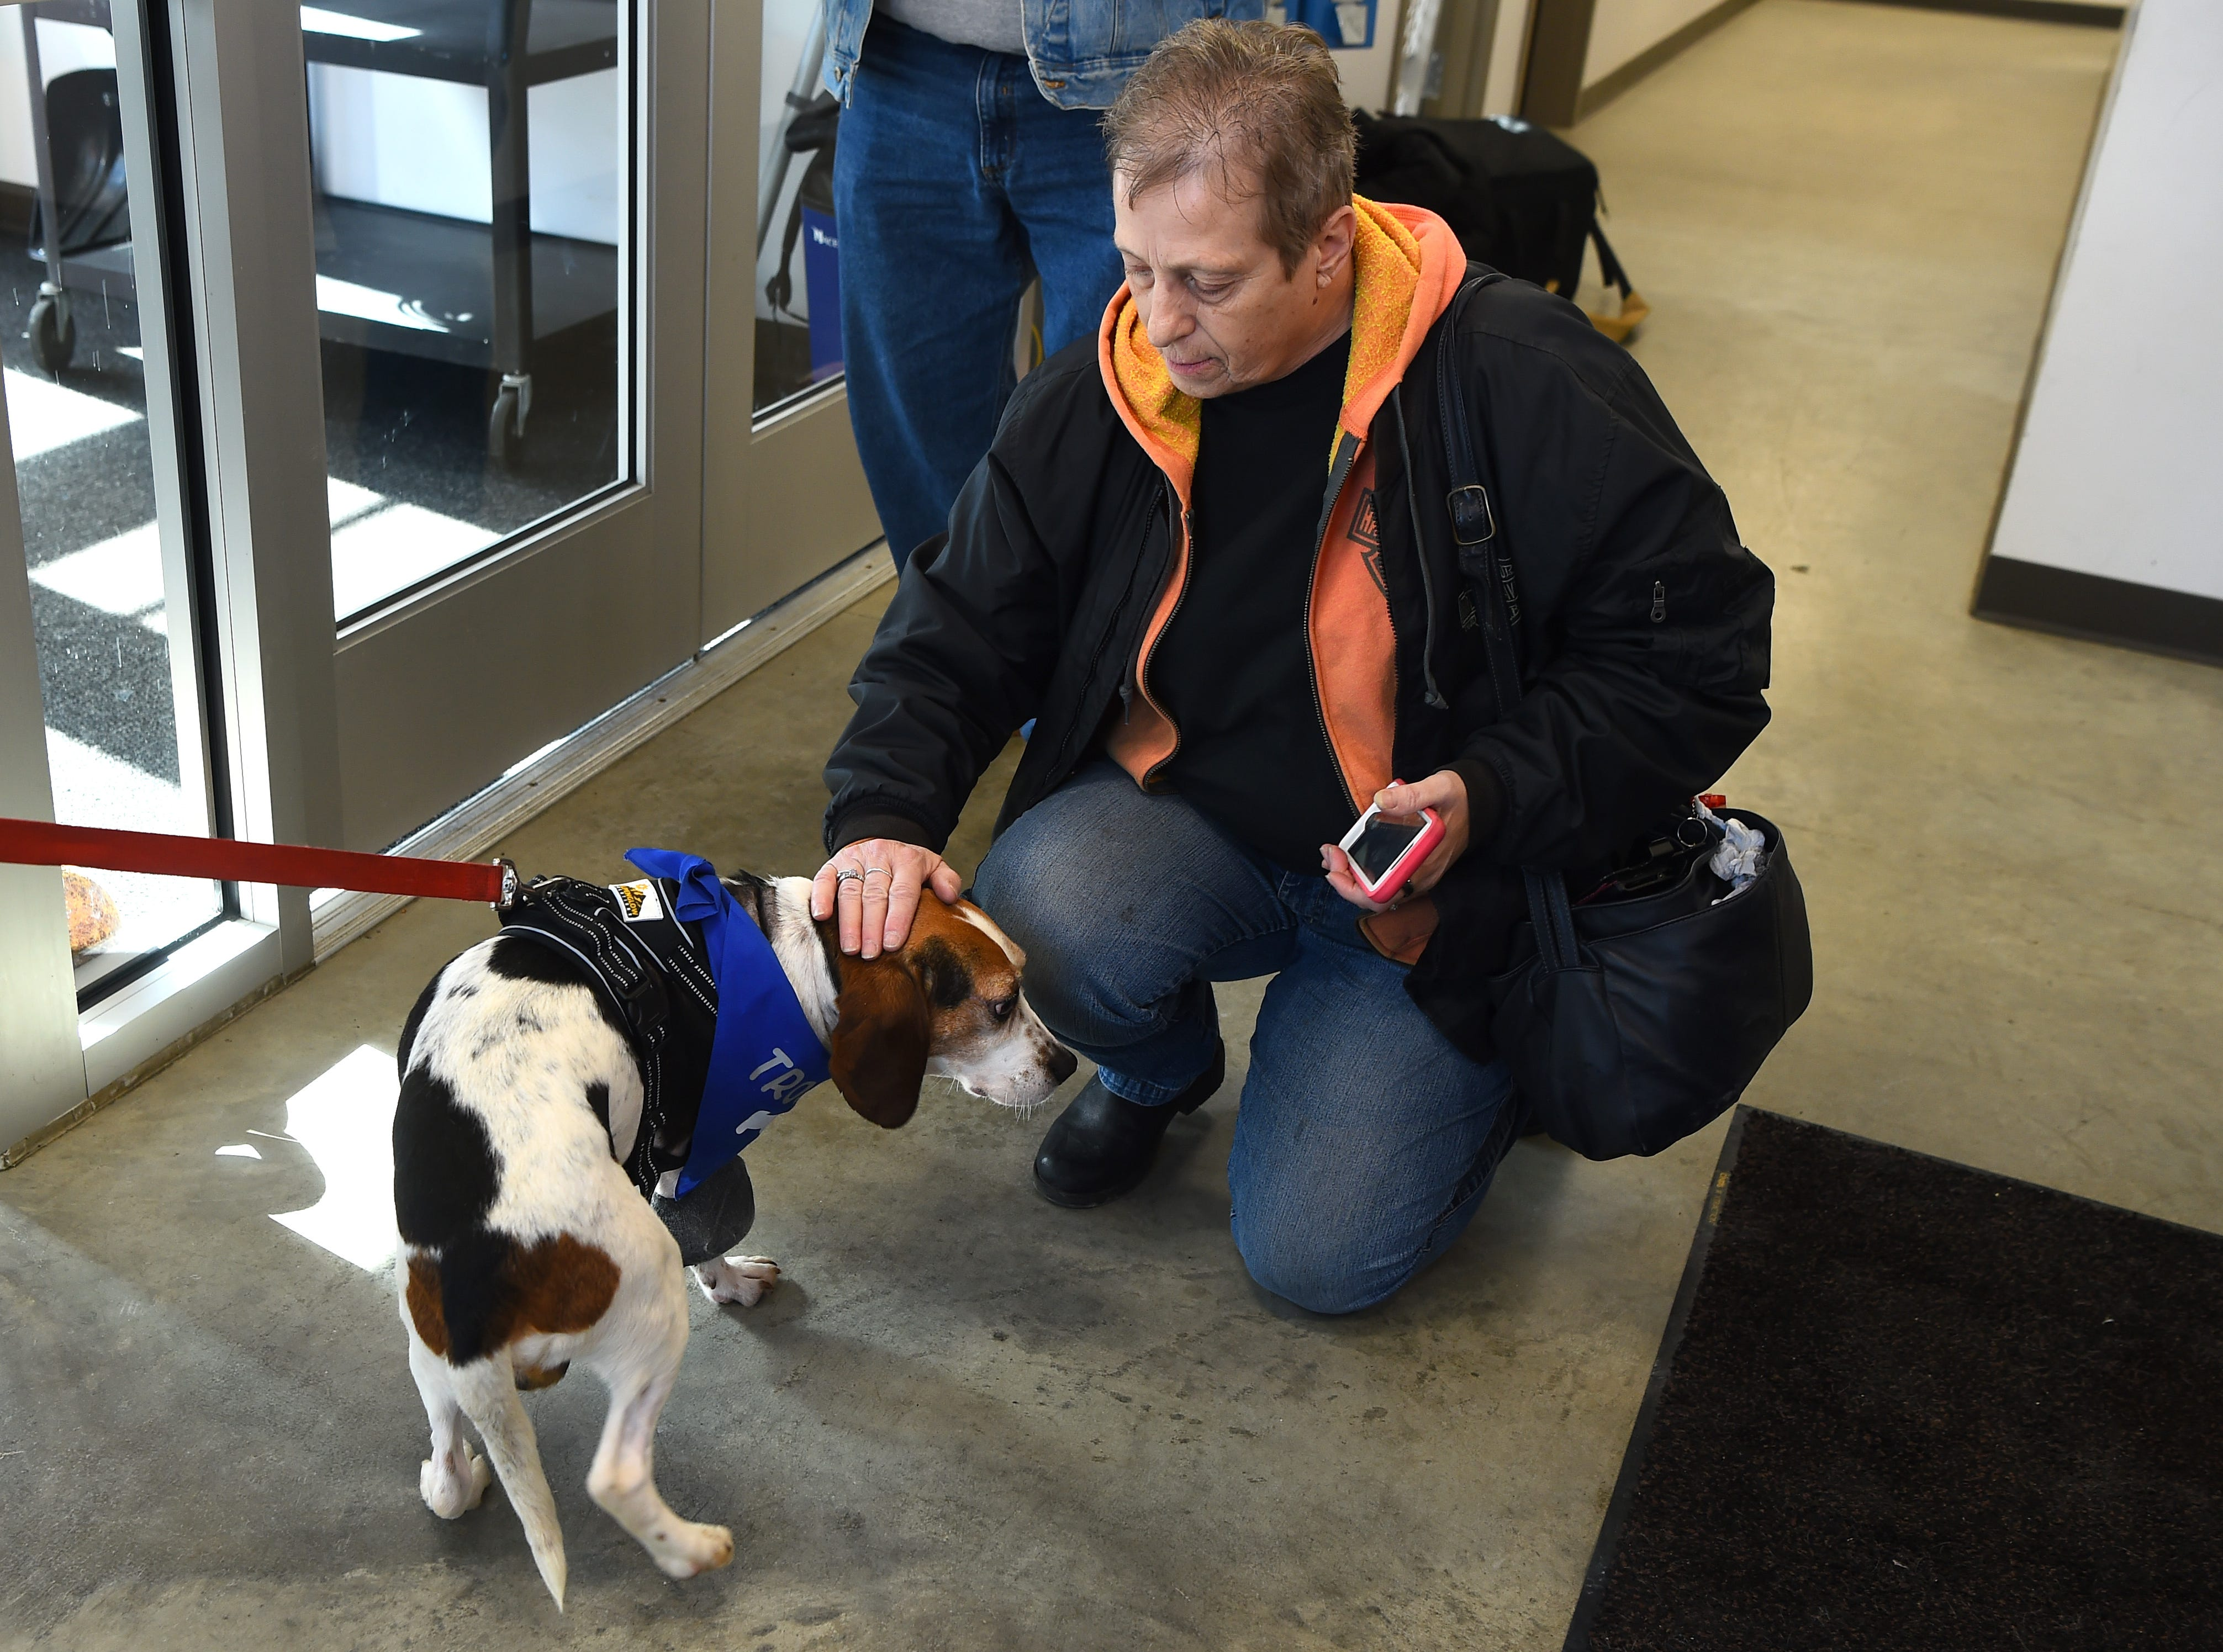 Trooper, one of two beagles thrown from a vehicle in December, with a visitor to the Broome County Humane Society. Trooper had one leg amputated due to the injury he sustained but is recovering well. January 11, 2019.